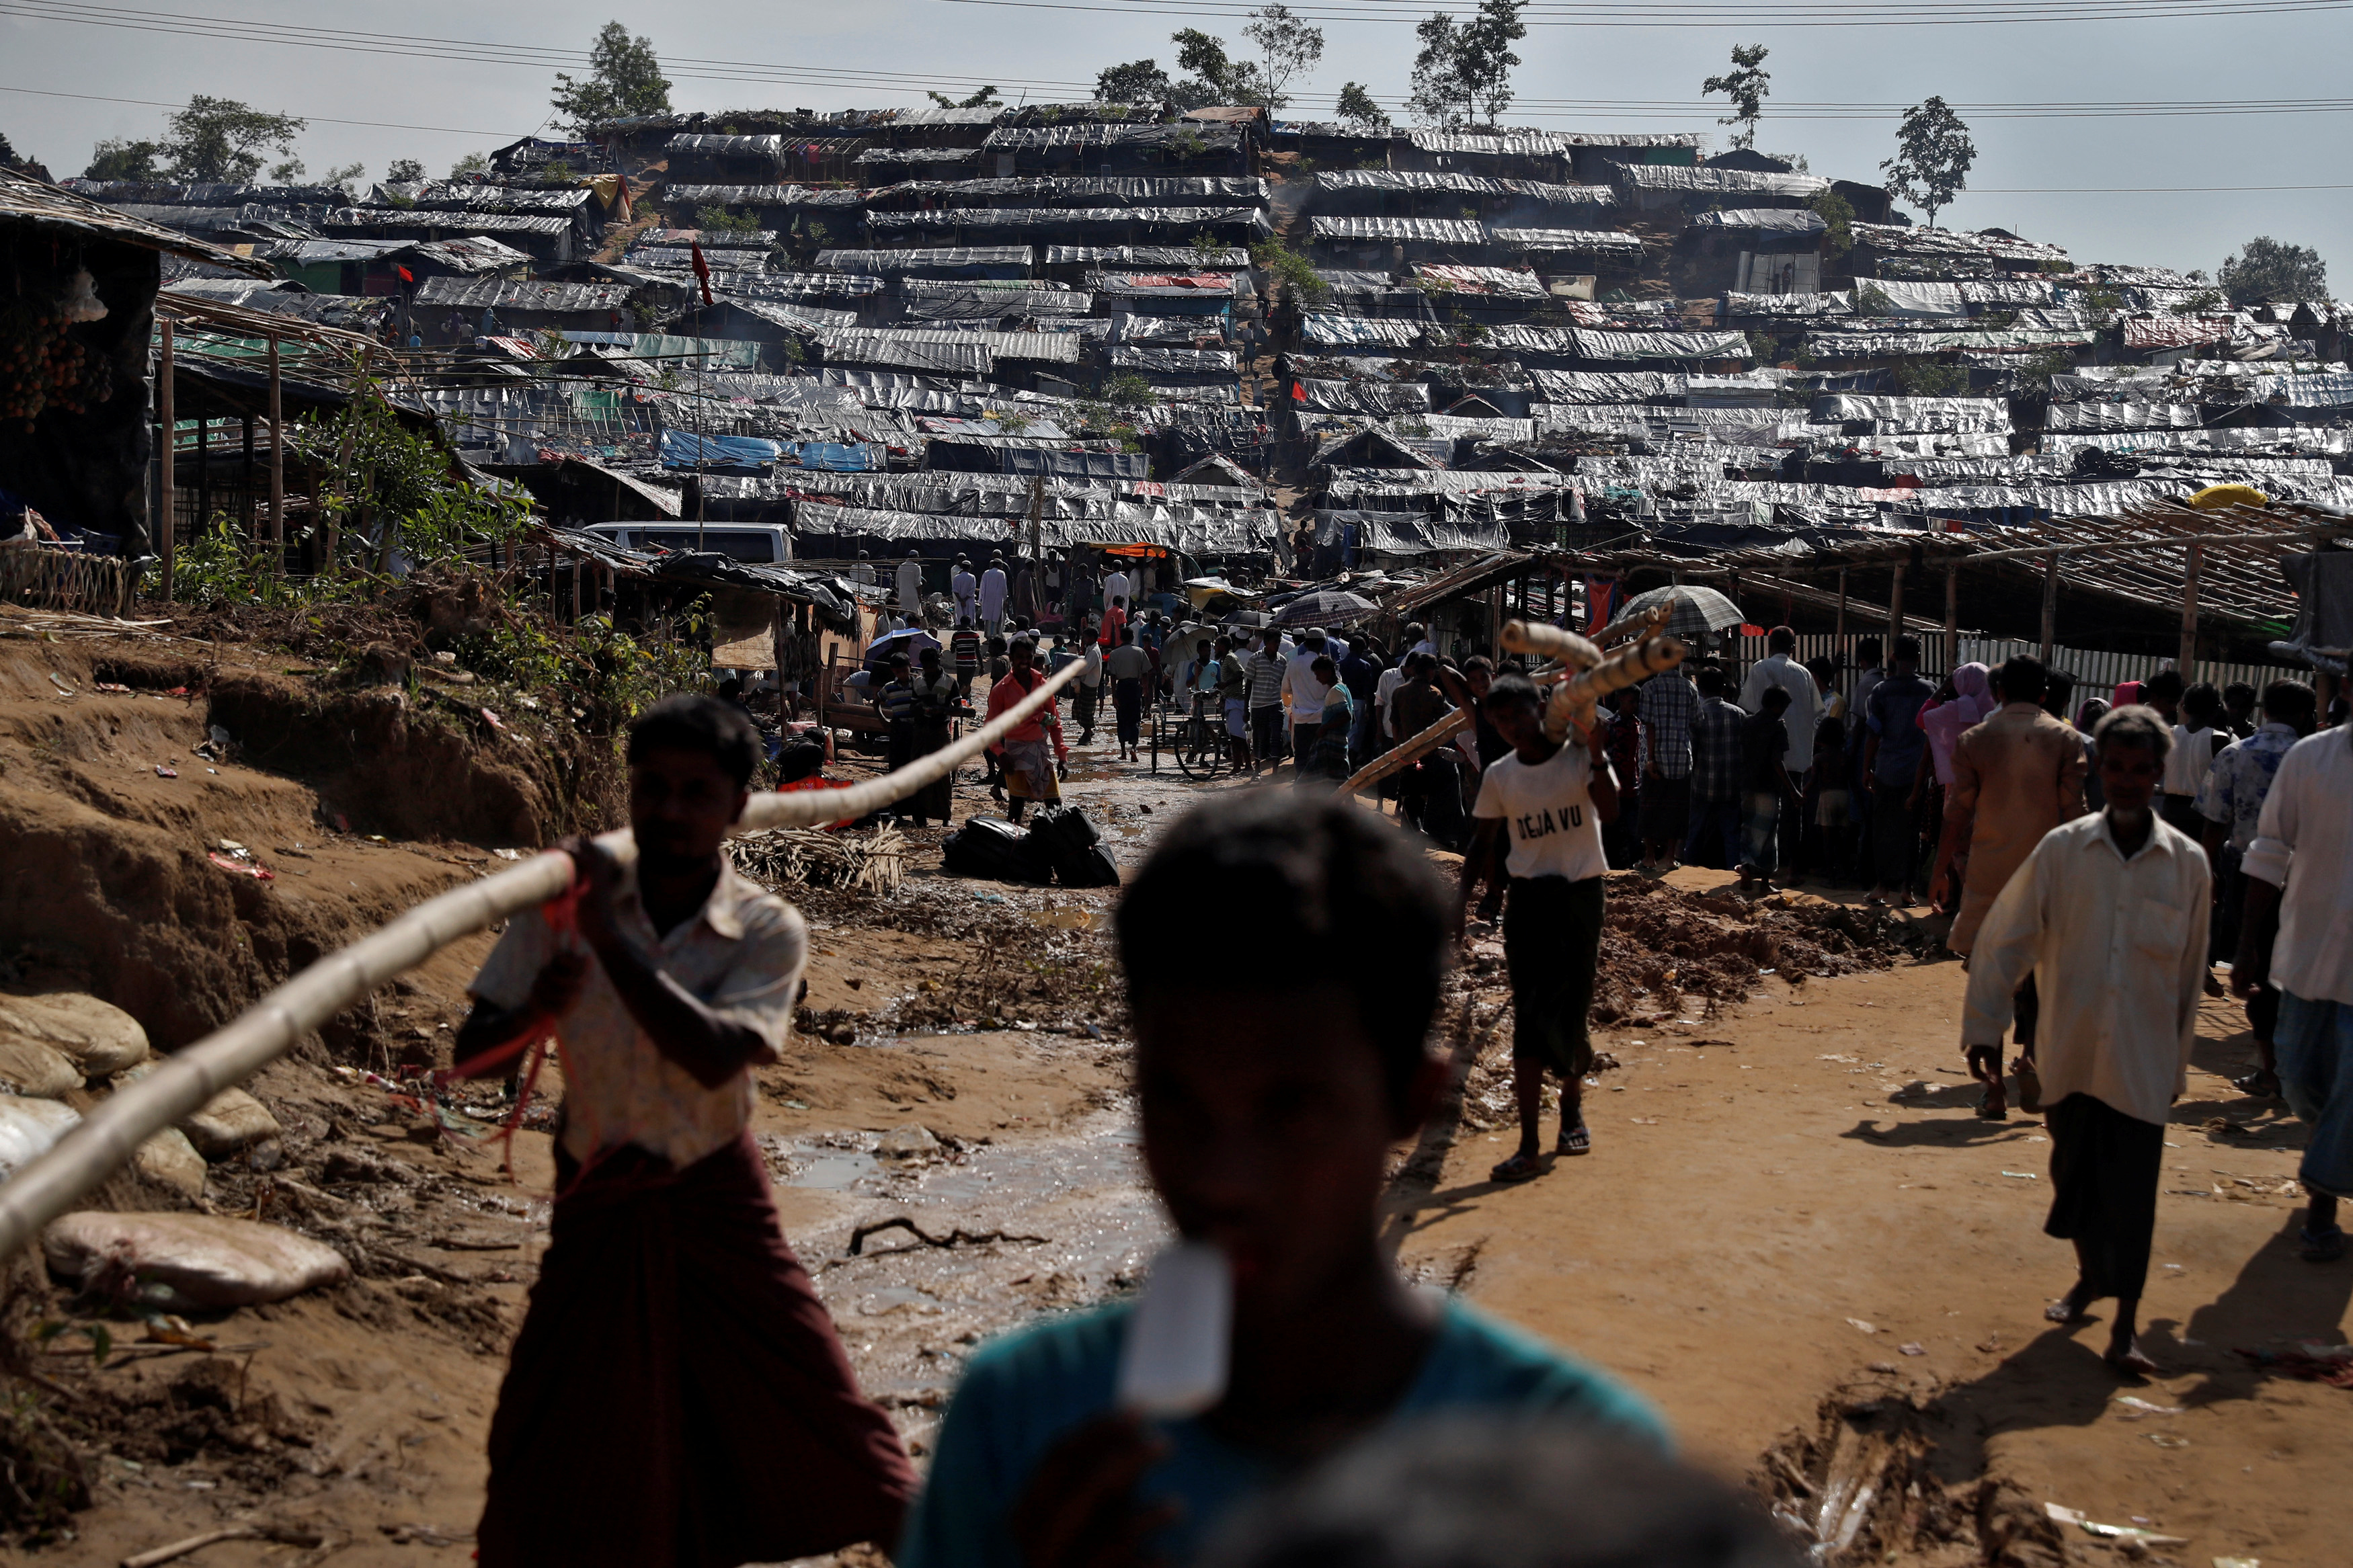 Rohingya refugees walk through a camp in Cox's Bazar, Bangladesh, September 25, 2017. REUTERS/Cathal McNaughton